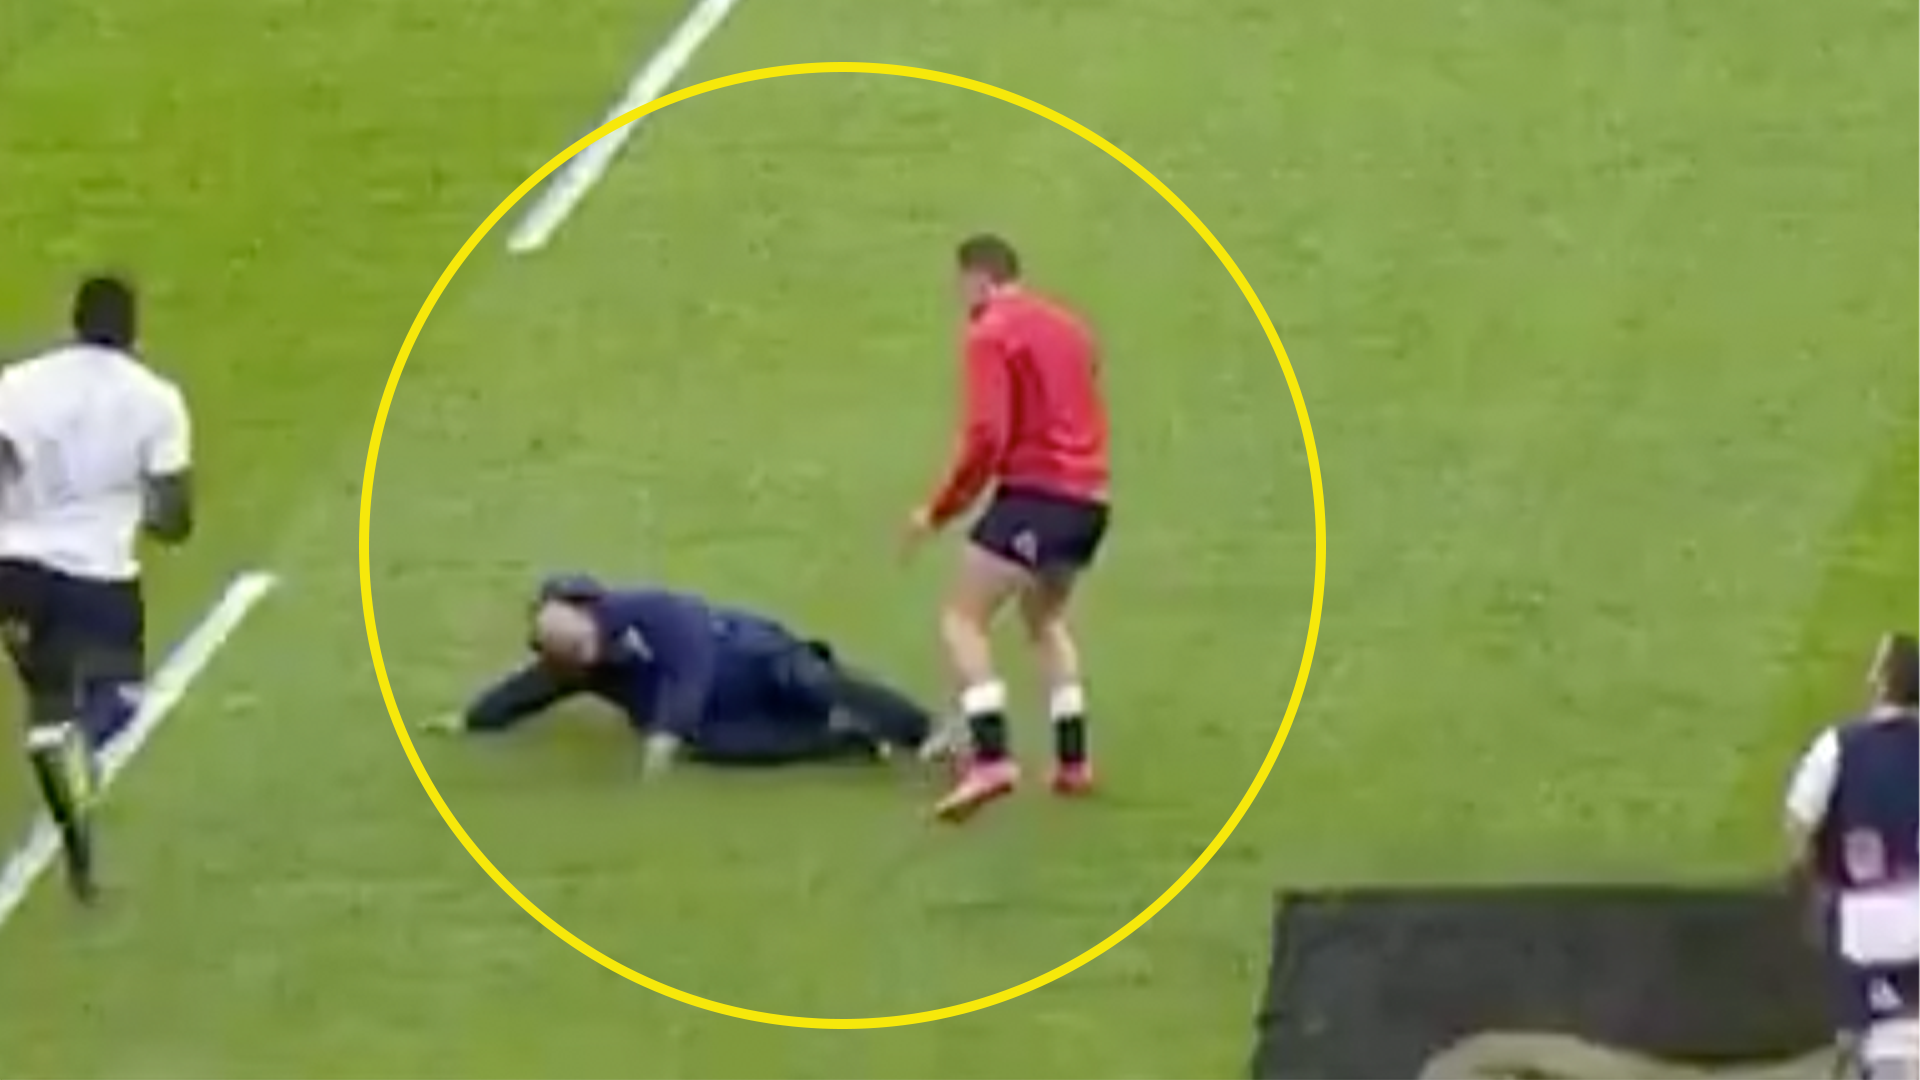 England Rugby in disarray after pre-match incident between Eddie Jones and Jonny May